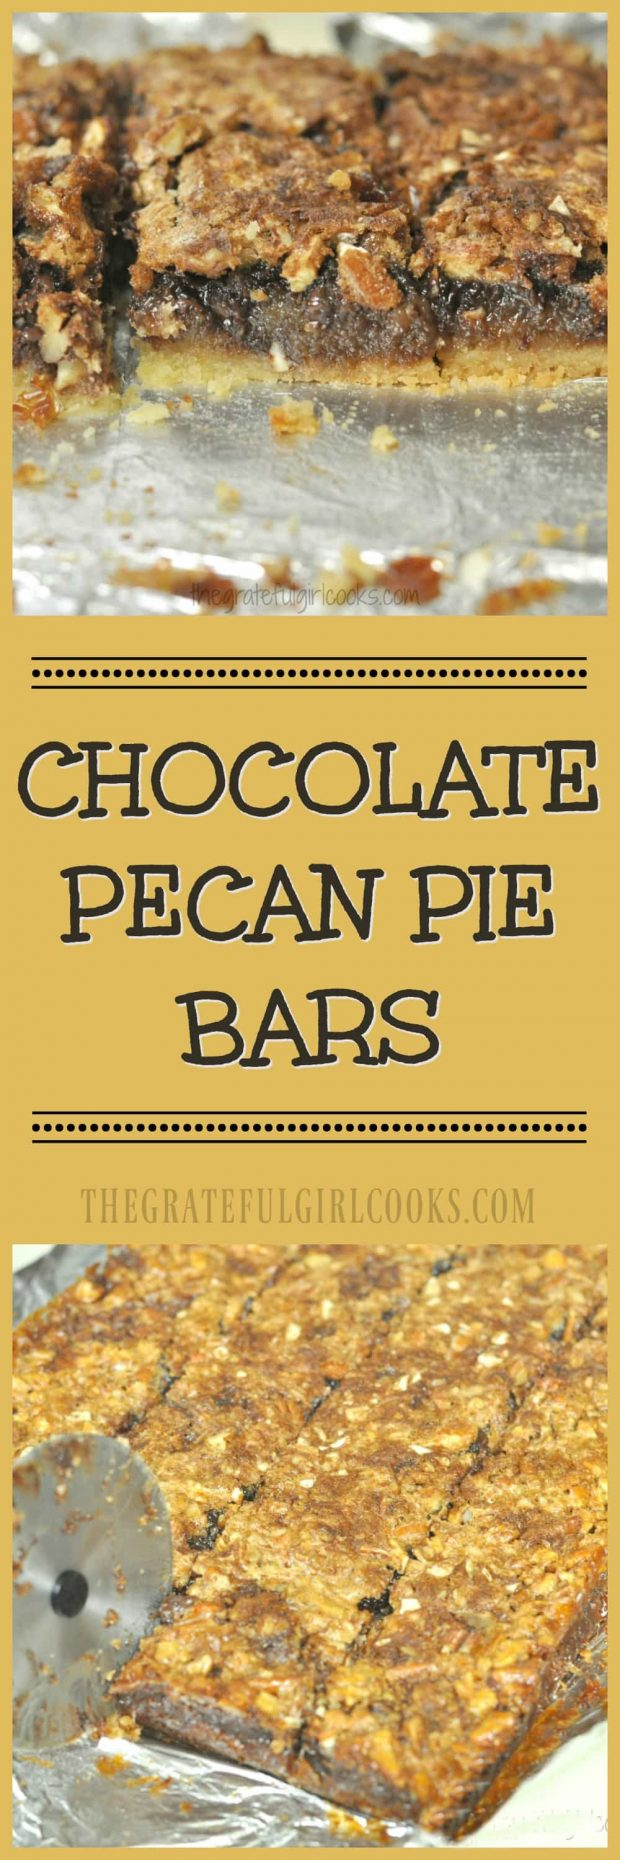 Chocolate Pecan Pie Bars / The Grateful Girl Cooks! Chocolate Pecan Pie Bars... for the win! These delicious treats, with a chewy chocolate and pecan pie filling on a shortbread crust, will be a big hit at your next potluck, family dinner, or get together!